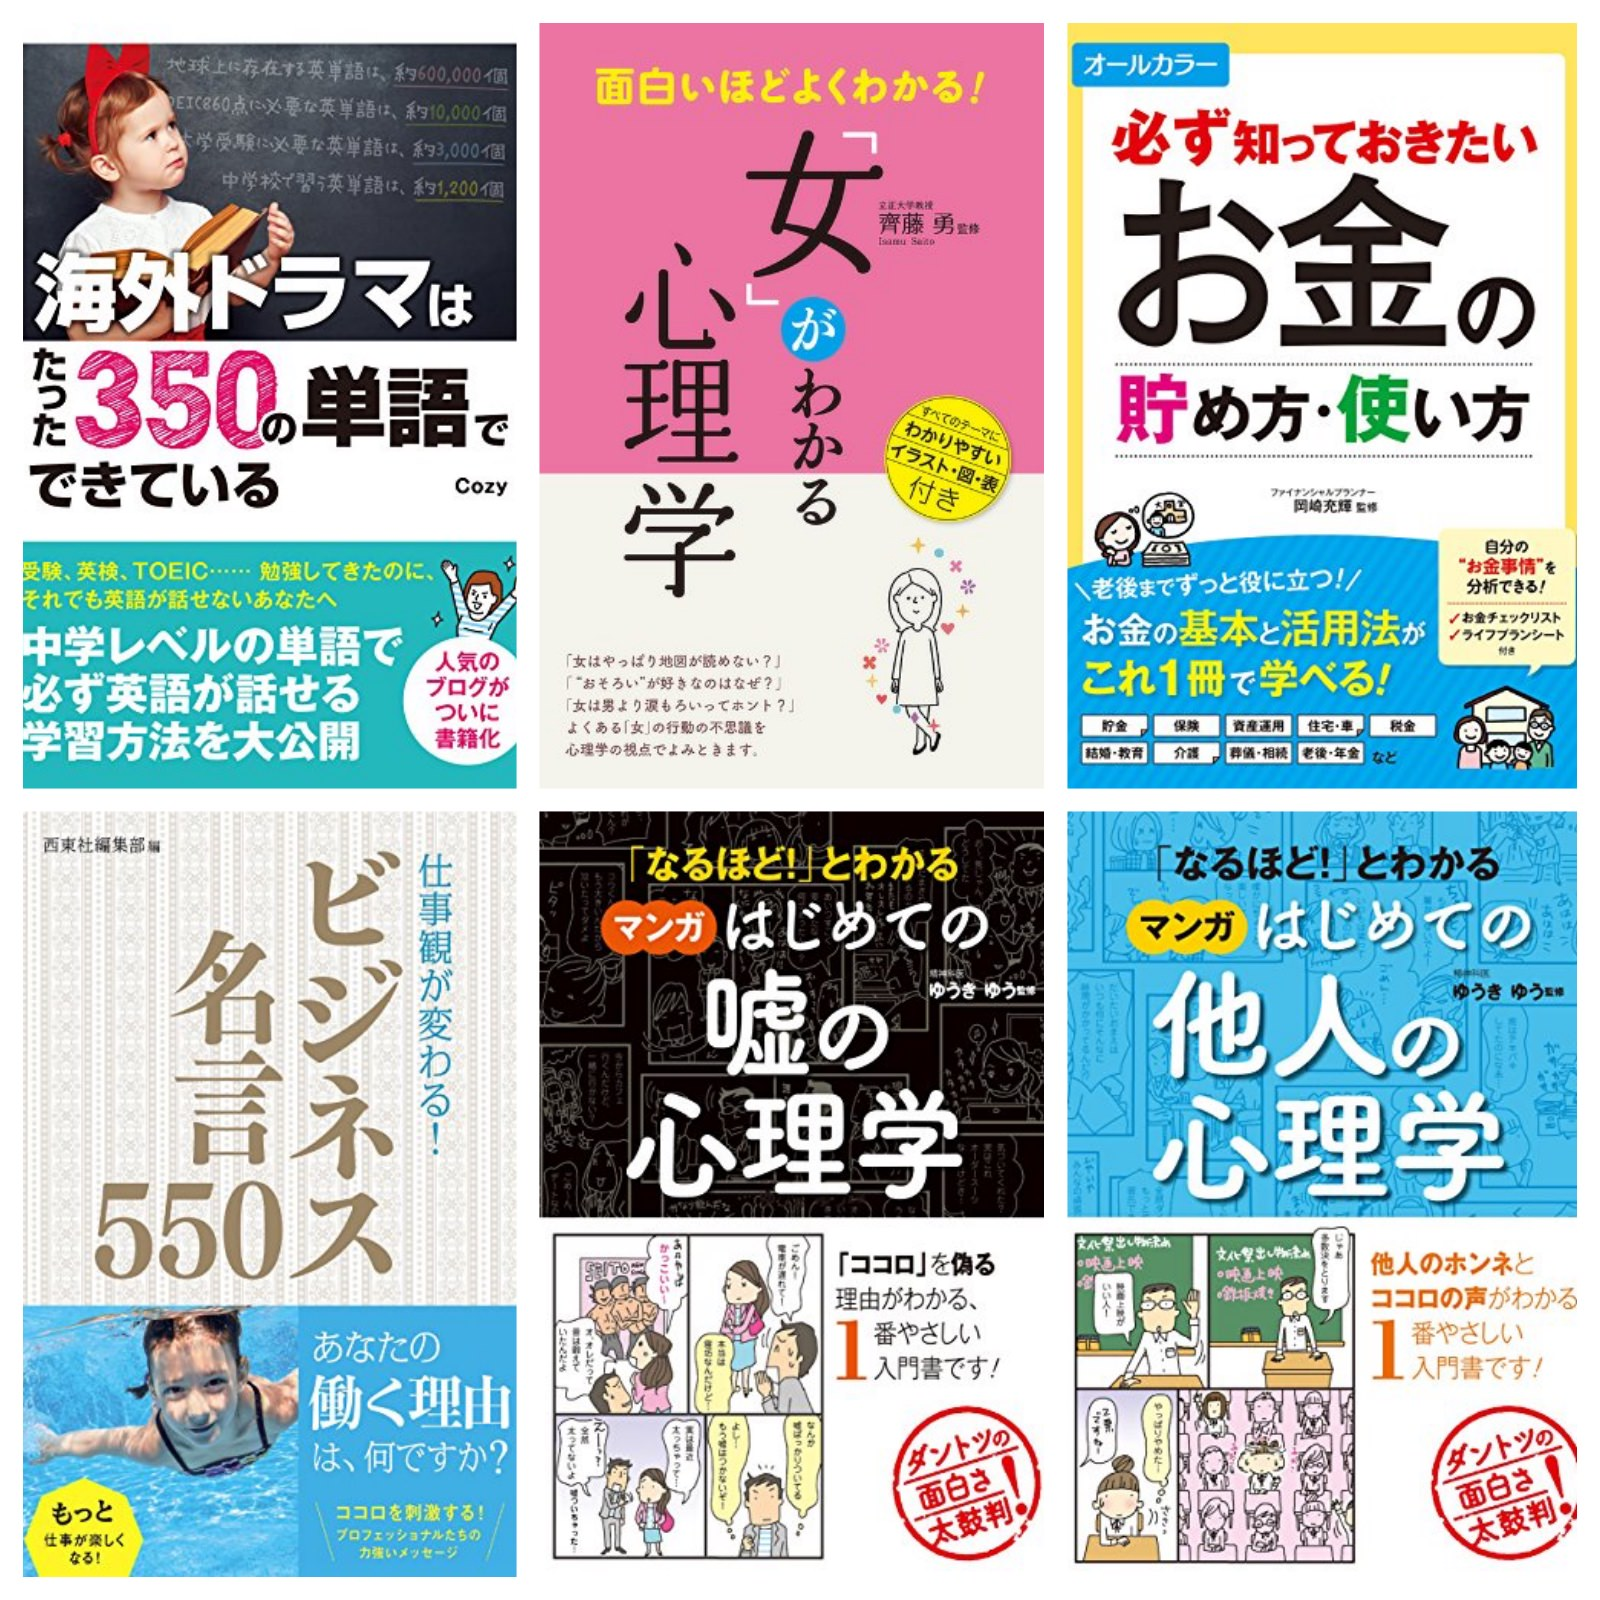 Kindle 299yen sale